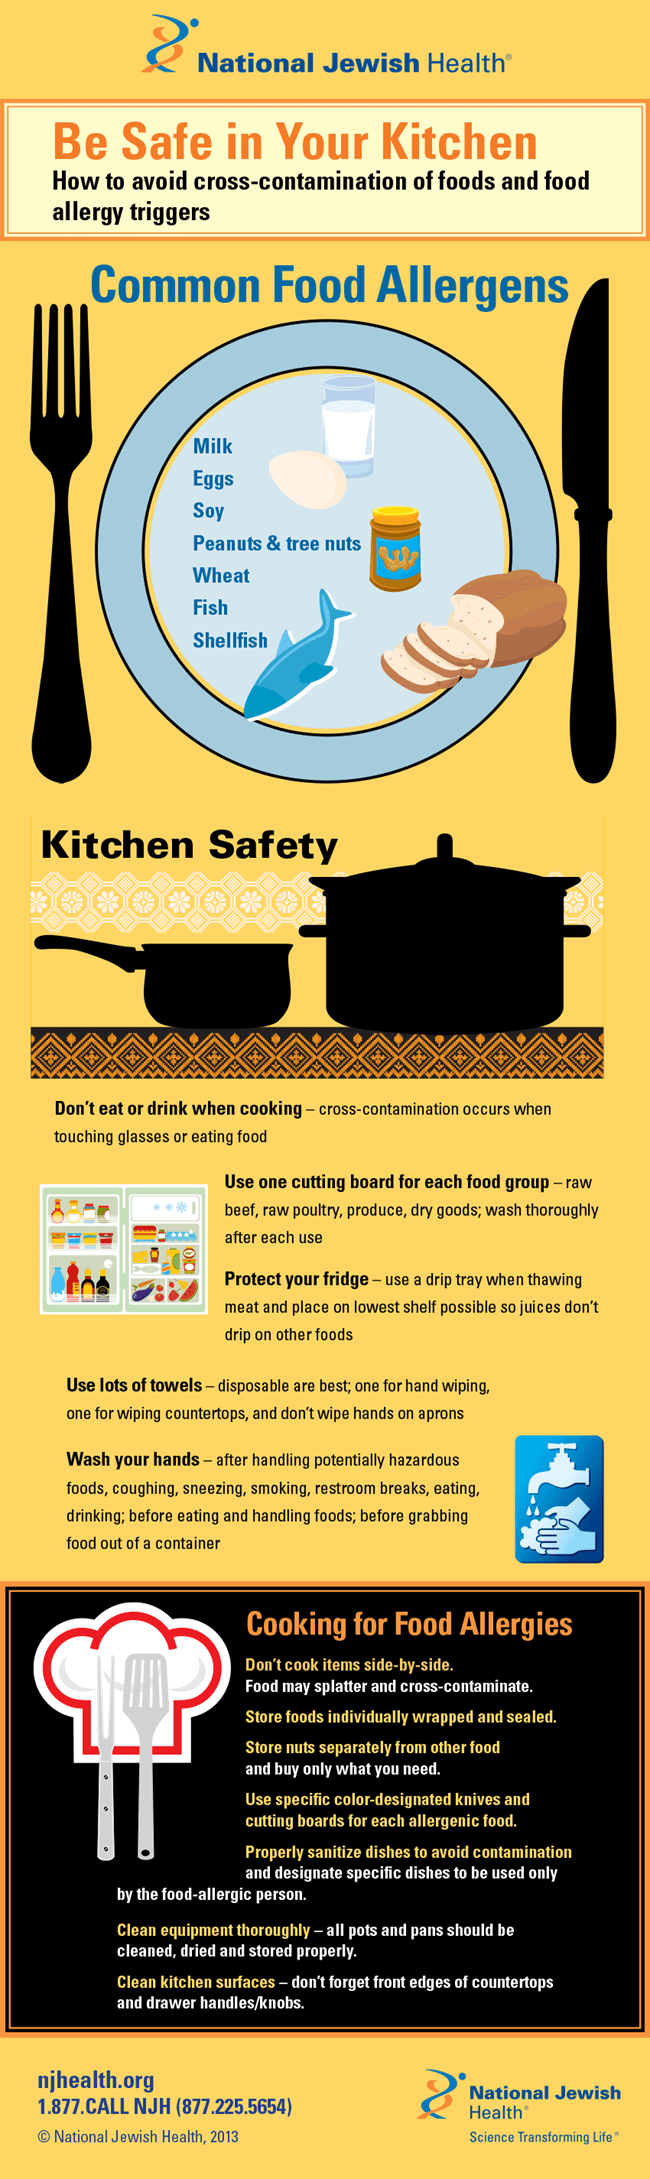 kitchen safety and food allergies infographic